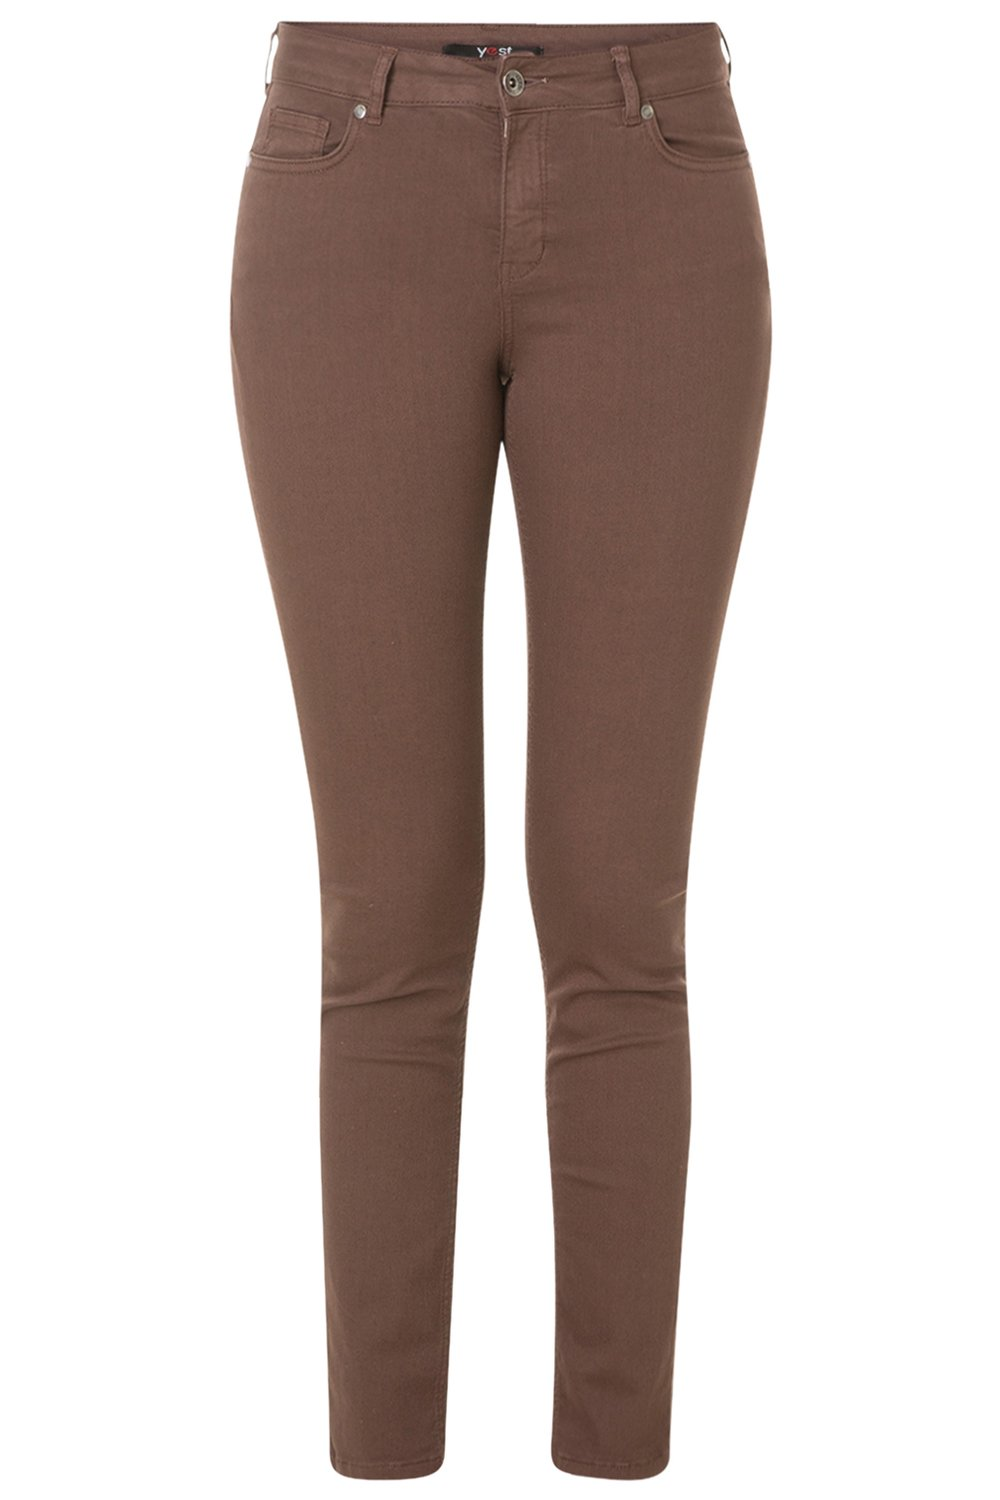 Broek Yesta Mella 5 pocket